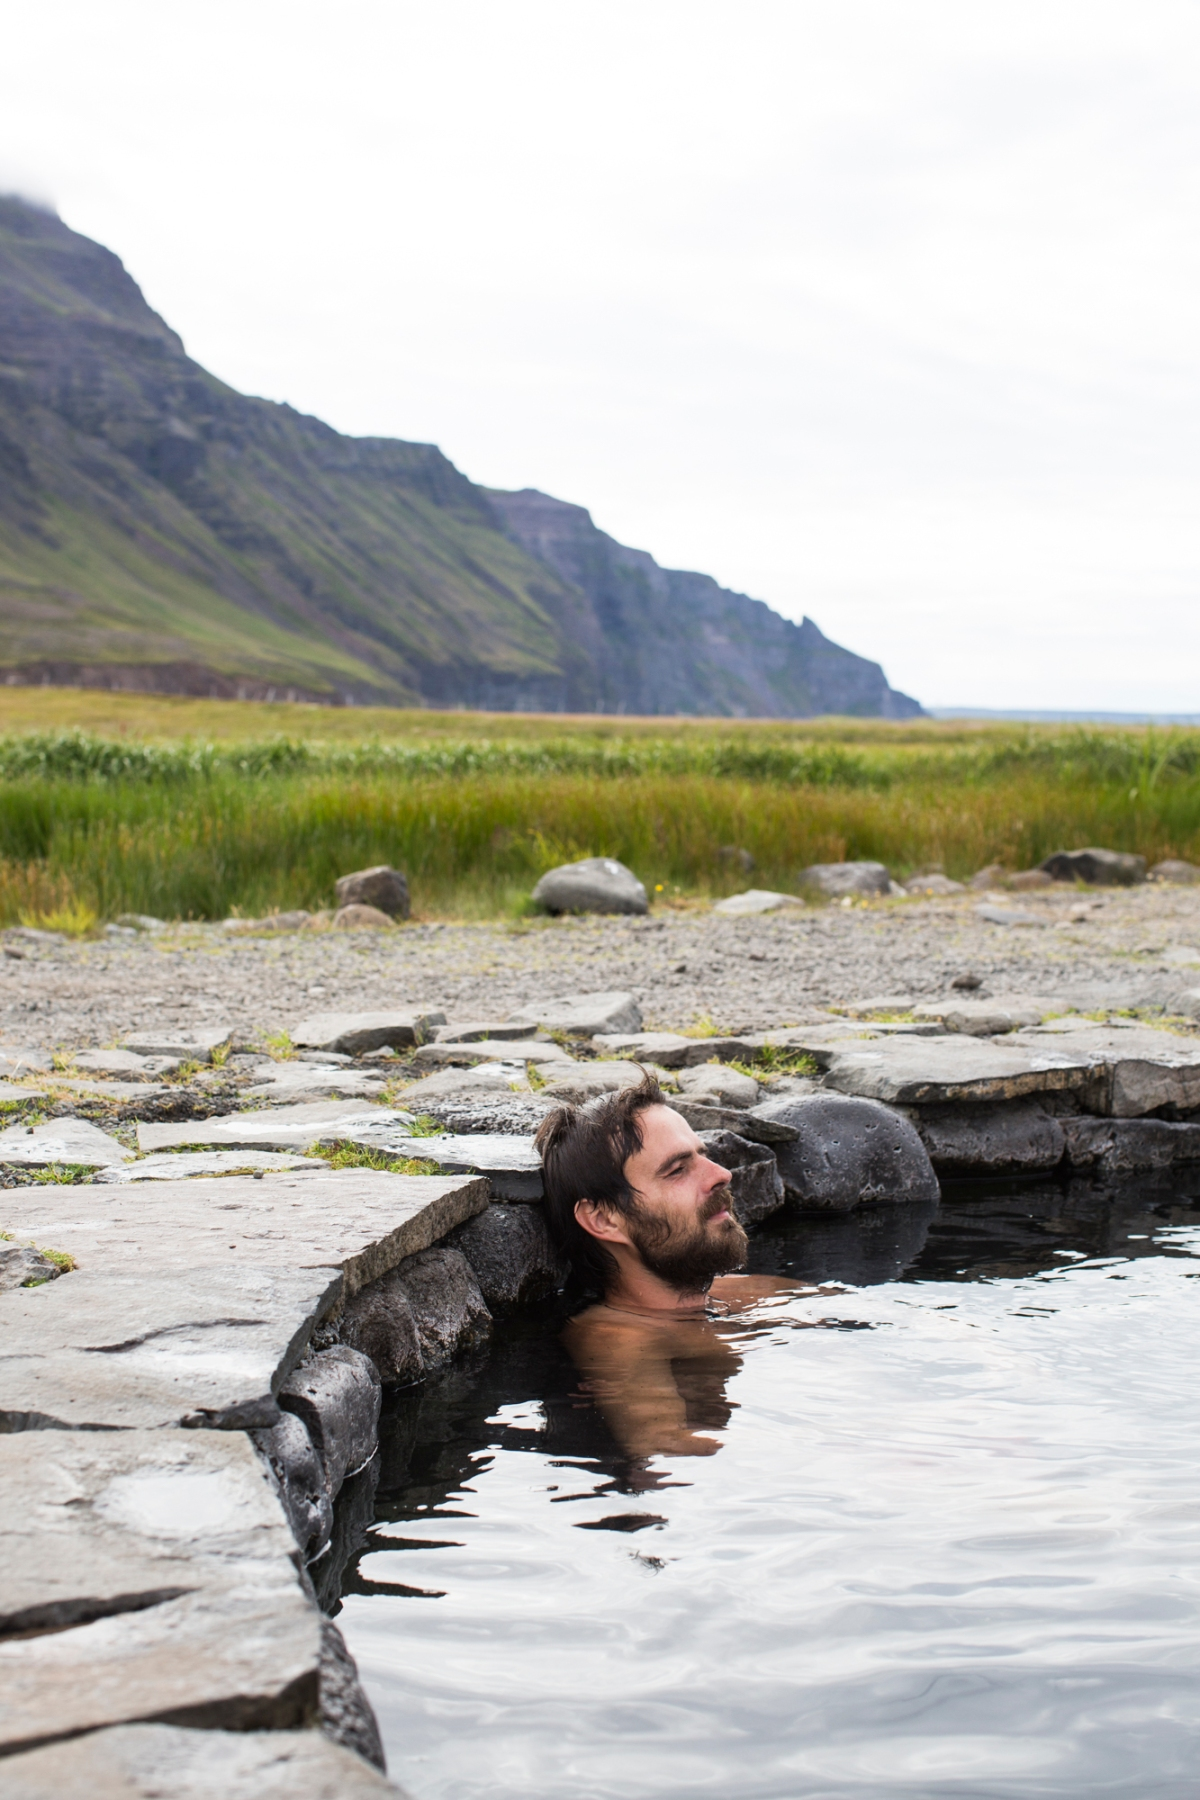 In hot water inIceland